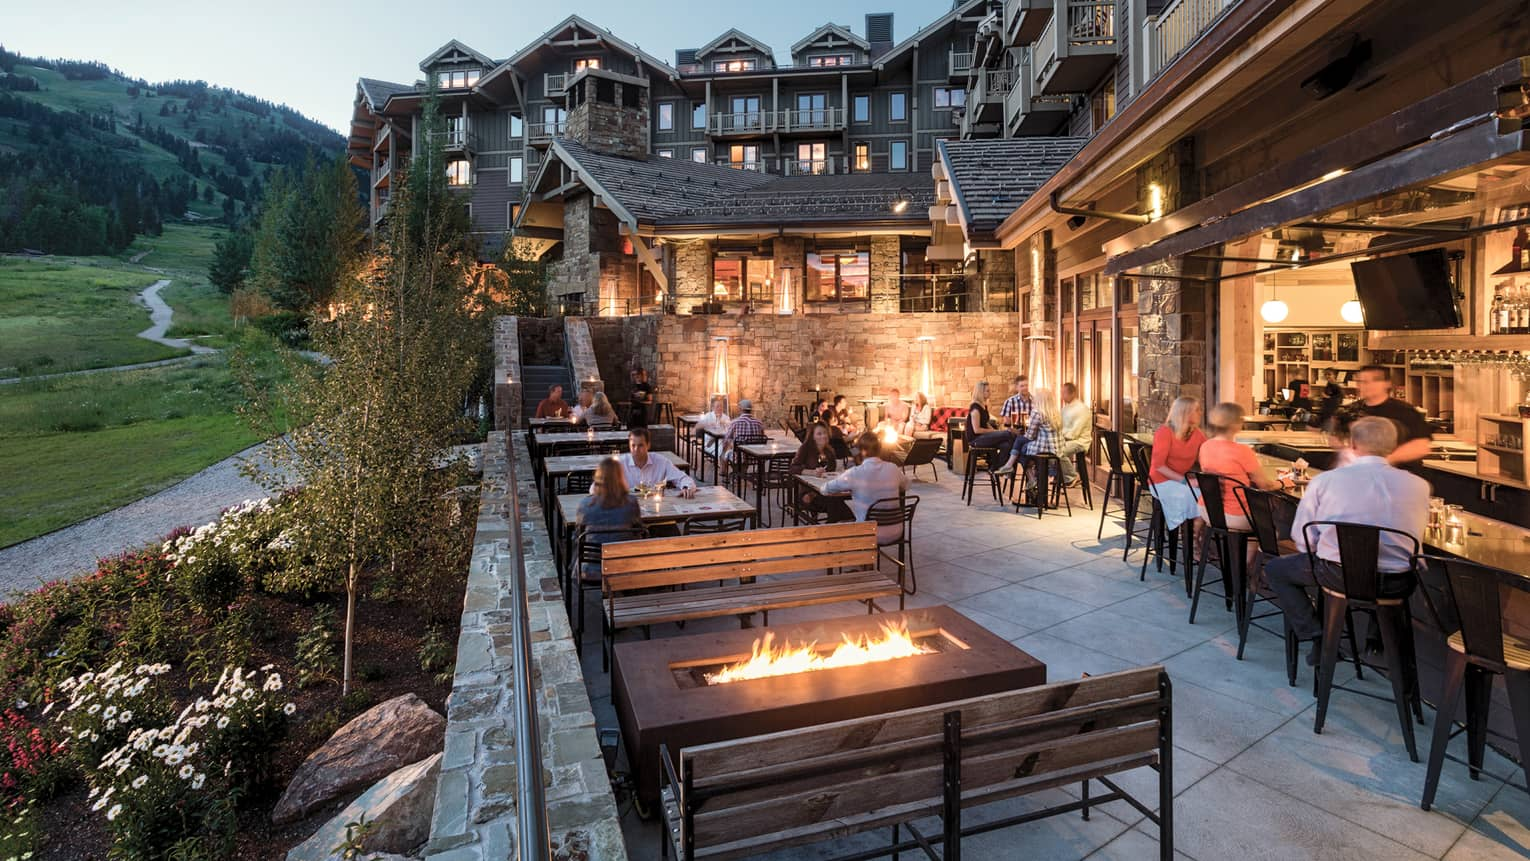 Outdoor patio of Handle Bar restaurant/pub with firepit, tables and bar seating with mountain view